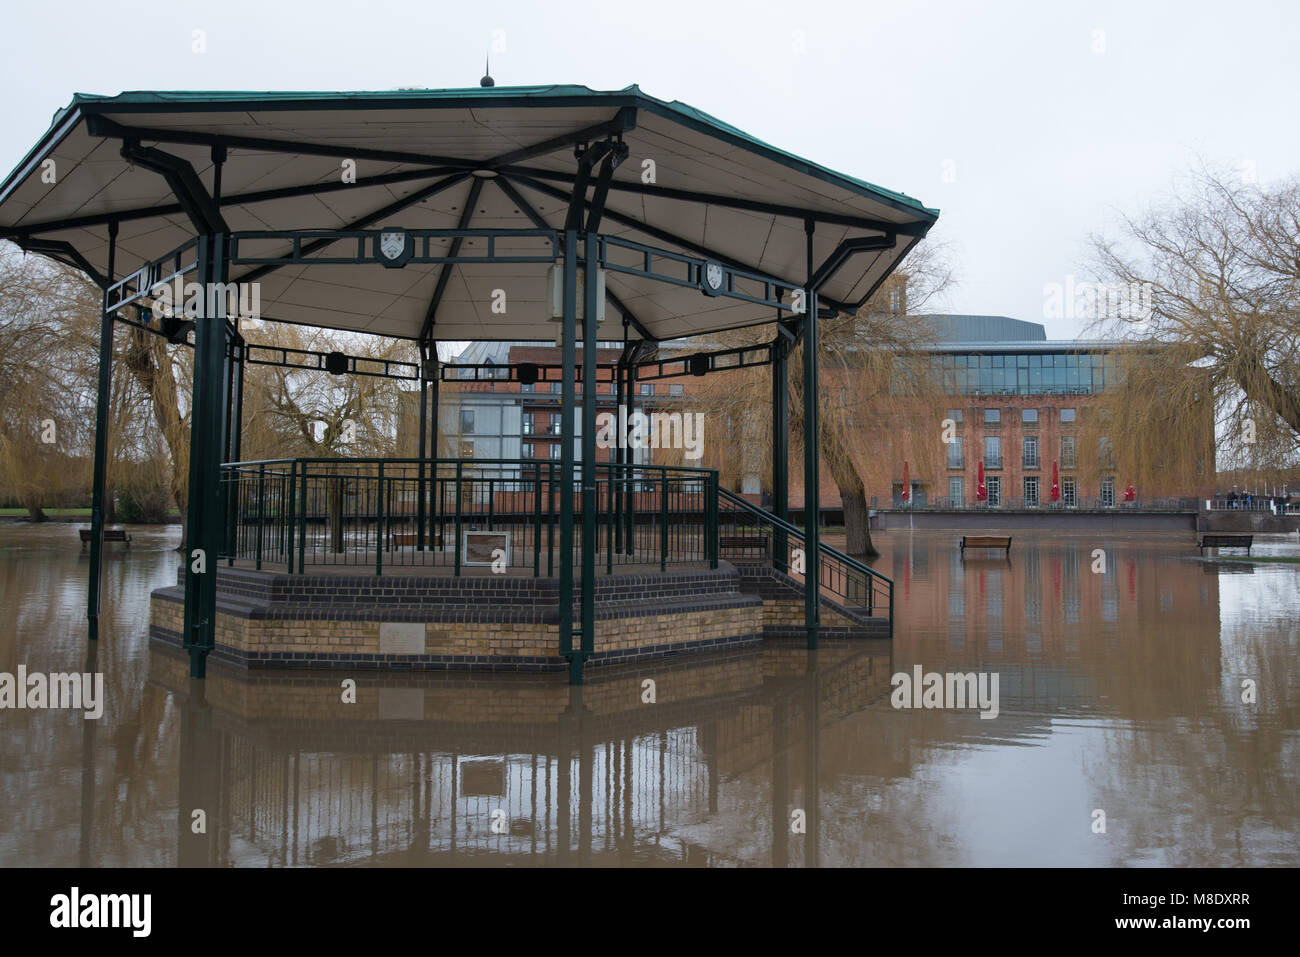 flooded town centre with bandstand completely surrounded by brown flood water from the river Avon - Stock Image